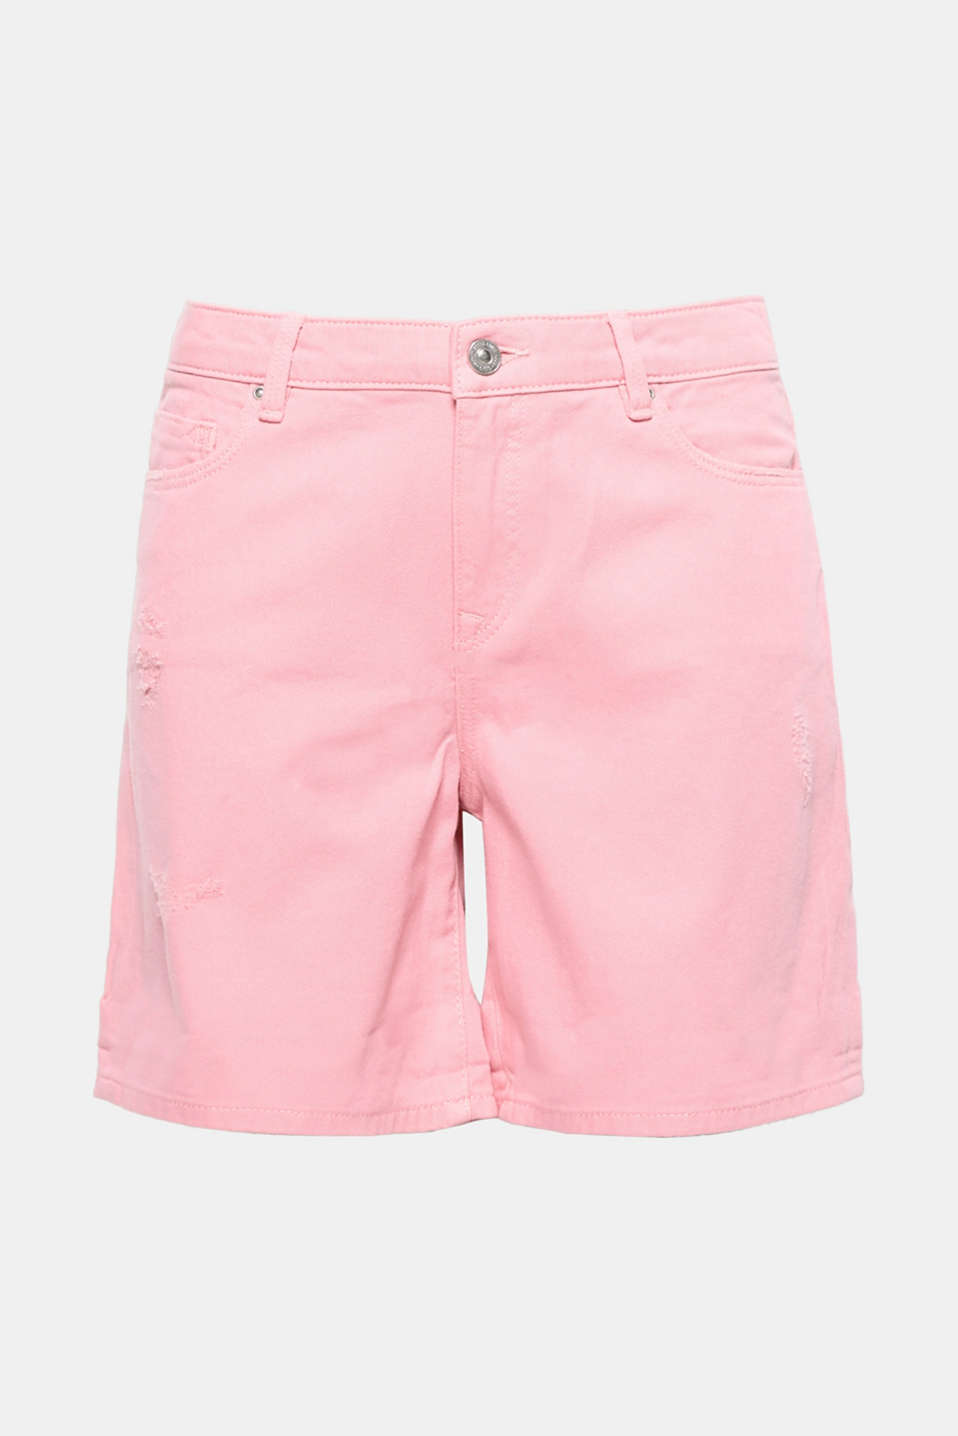 If you want to feel comfy and look cool when the weather warms up then these loose-fitting shorts made of destroyed cotton denim are the perfect choice!